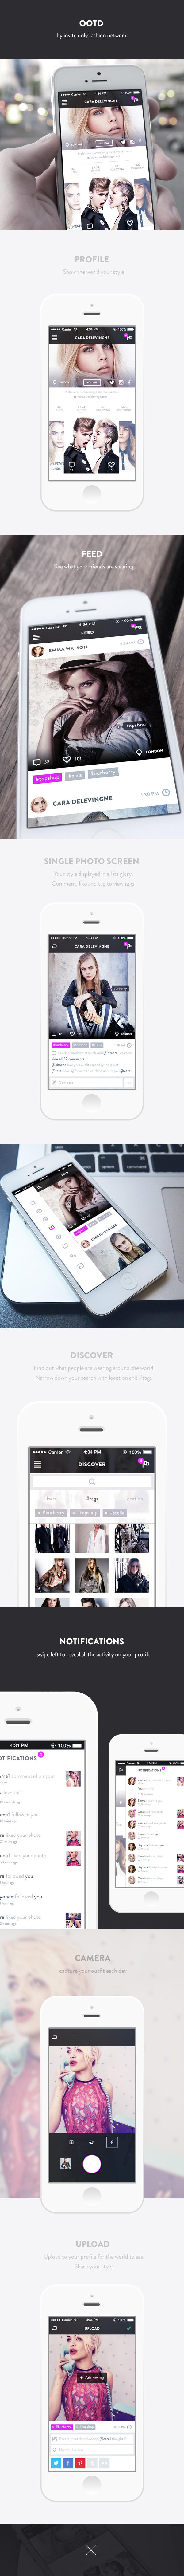 ios7 profile UI ux flat Interface redesign iphone social sharing